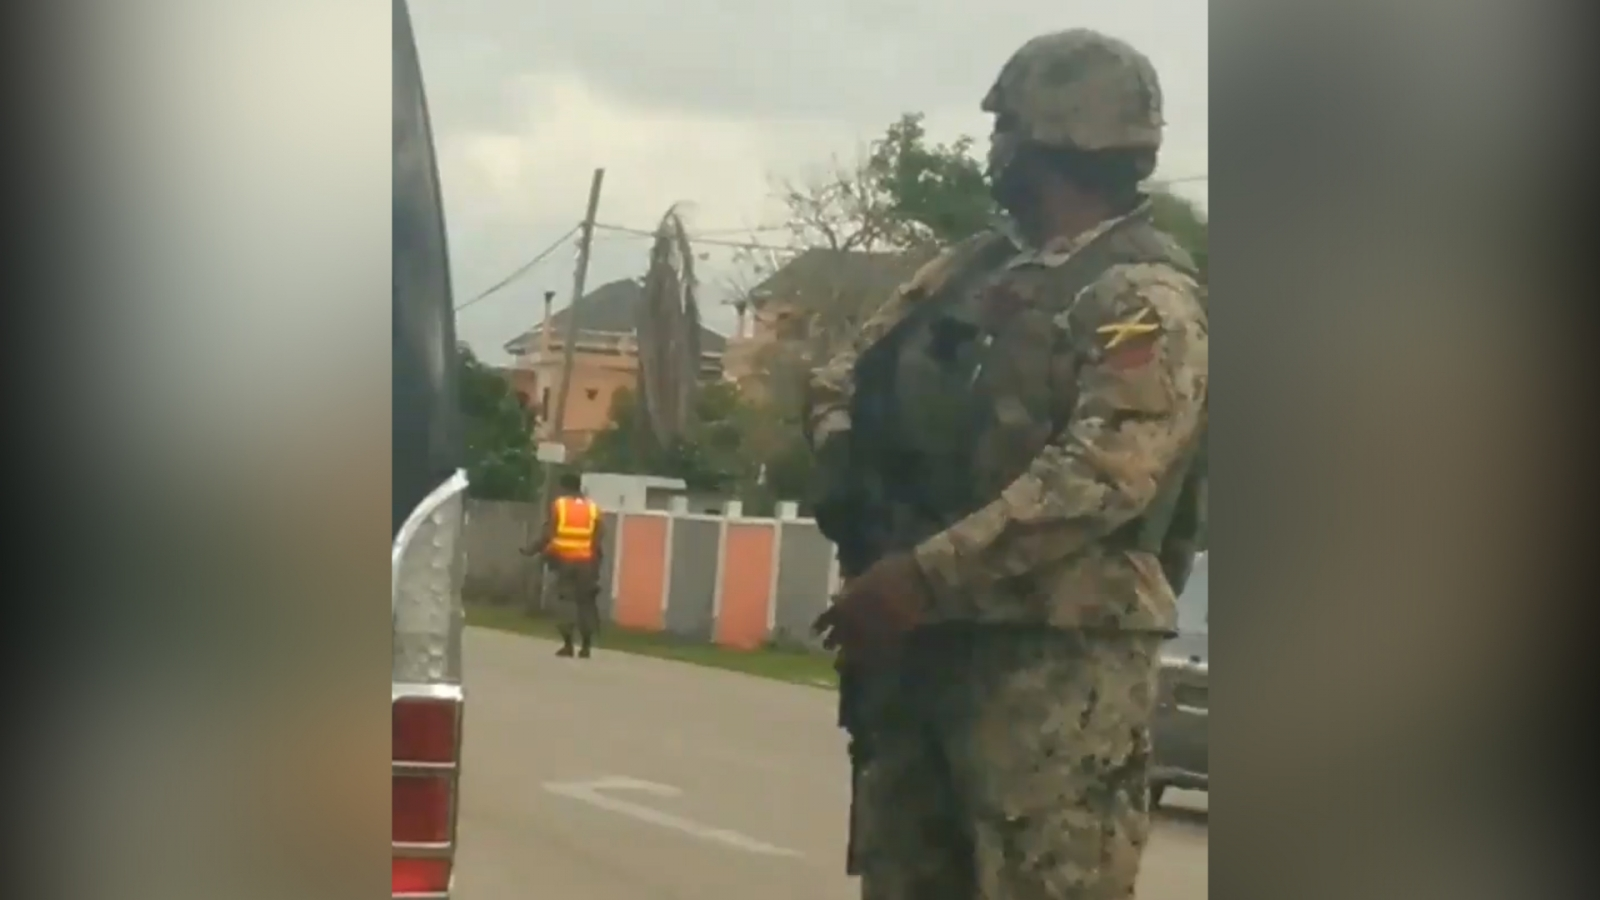 military-checkpoints-set-up-after-state-of-emergency-declared-in-jamaicas-st-james-parish